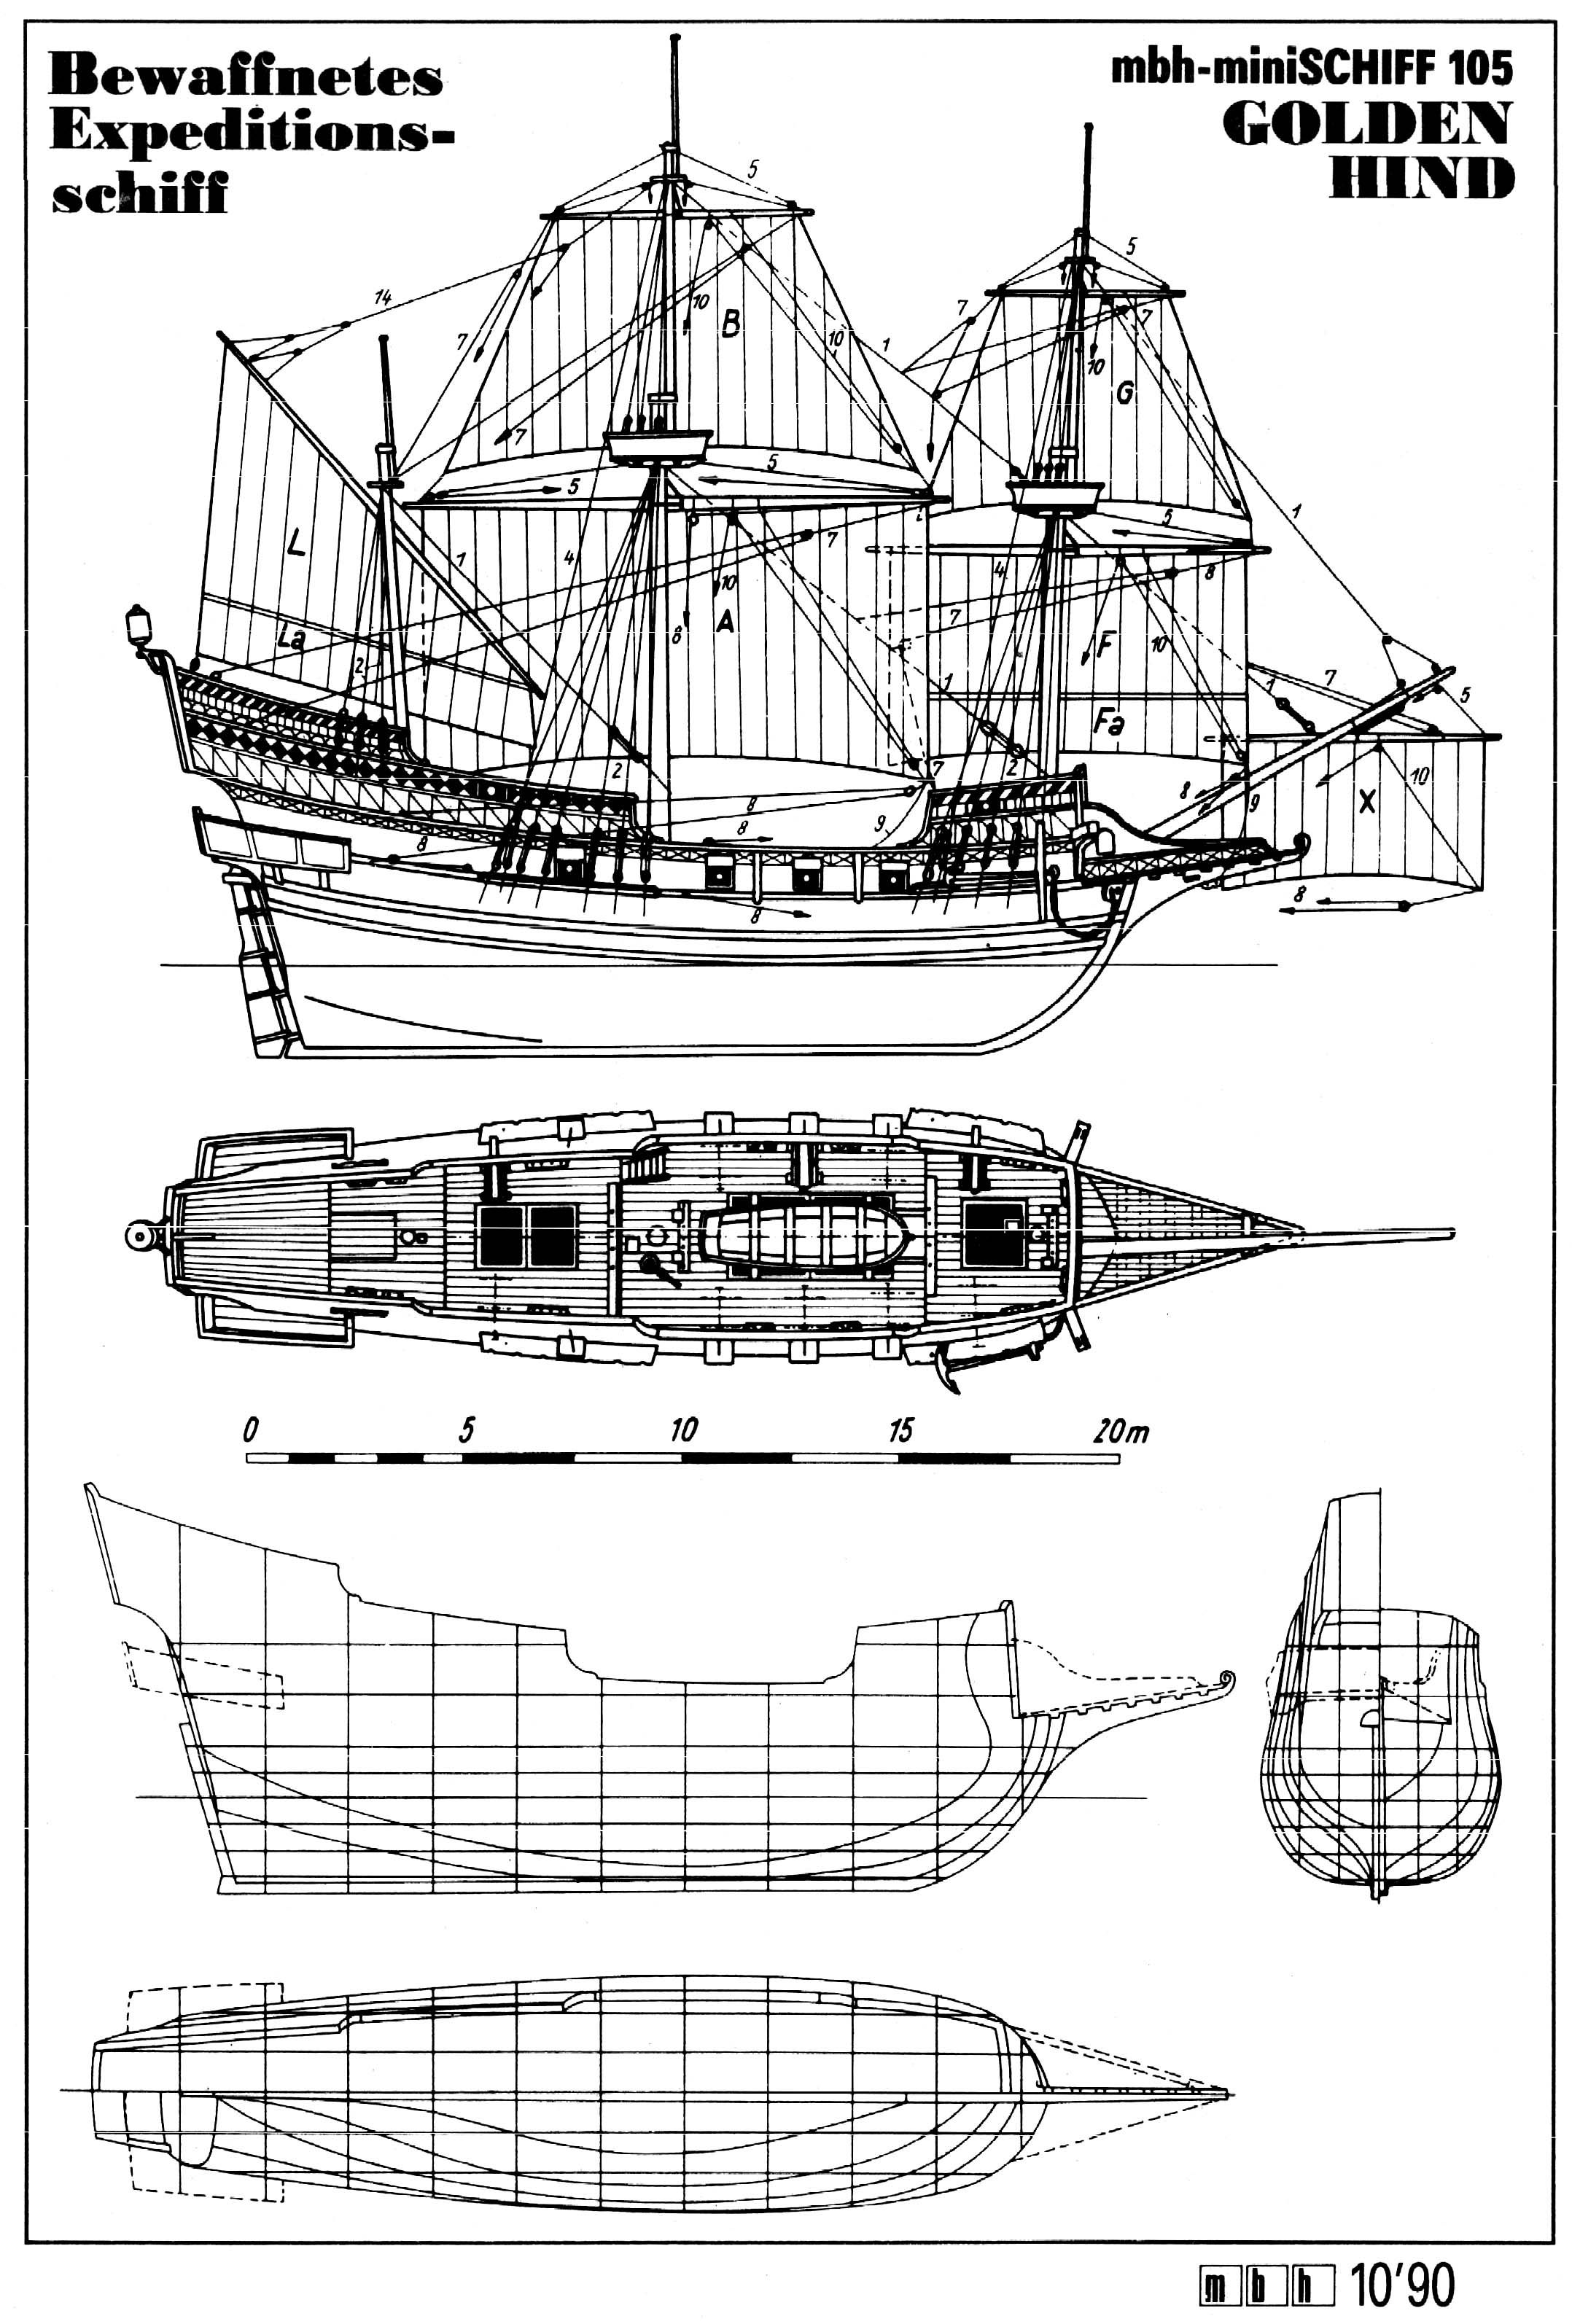 Tmp Your Pirate Ships Design From Which Decade Topic Sailing Ship Model Pirate Ship Model Model Sailing Ships